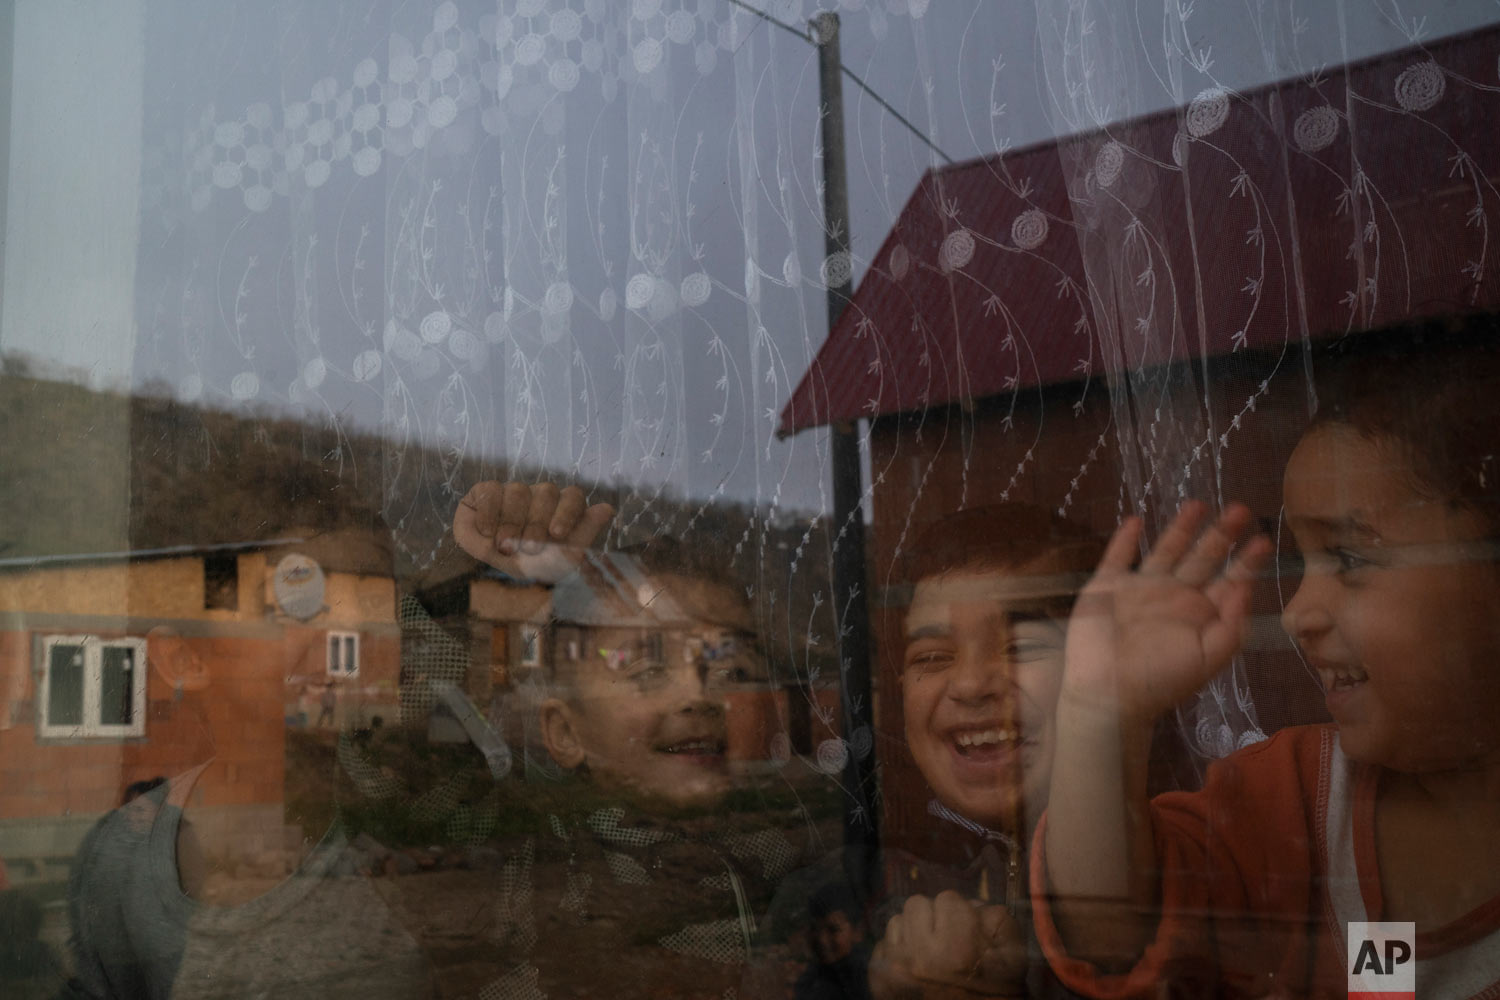 Homes are reflected off the window of Monika Krcova's house as her grandchildren play inside at the Podhorany village on Nov. 14, 2018, near Kezmarok, Slovakia. (AP Photo/Felipe Dana)